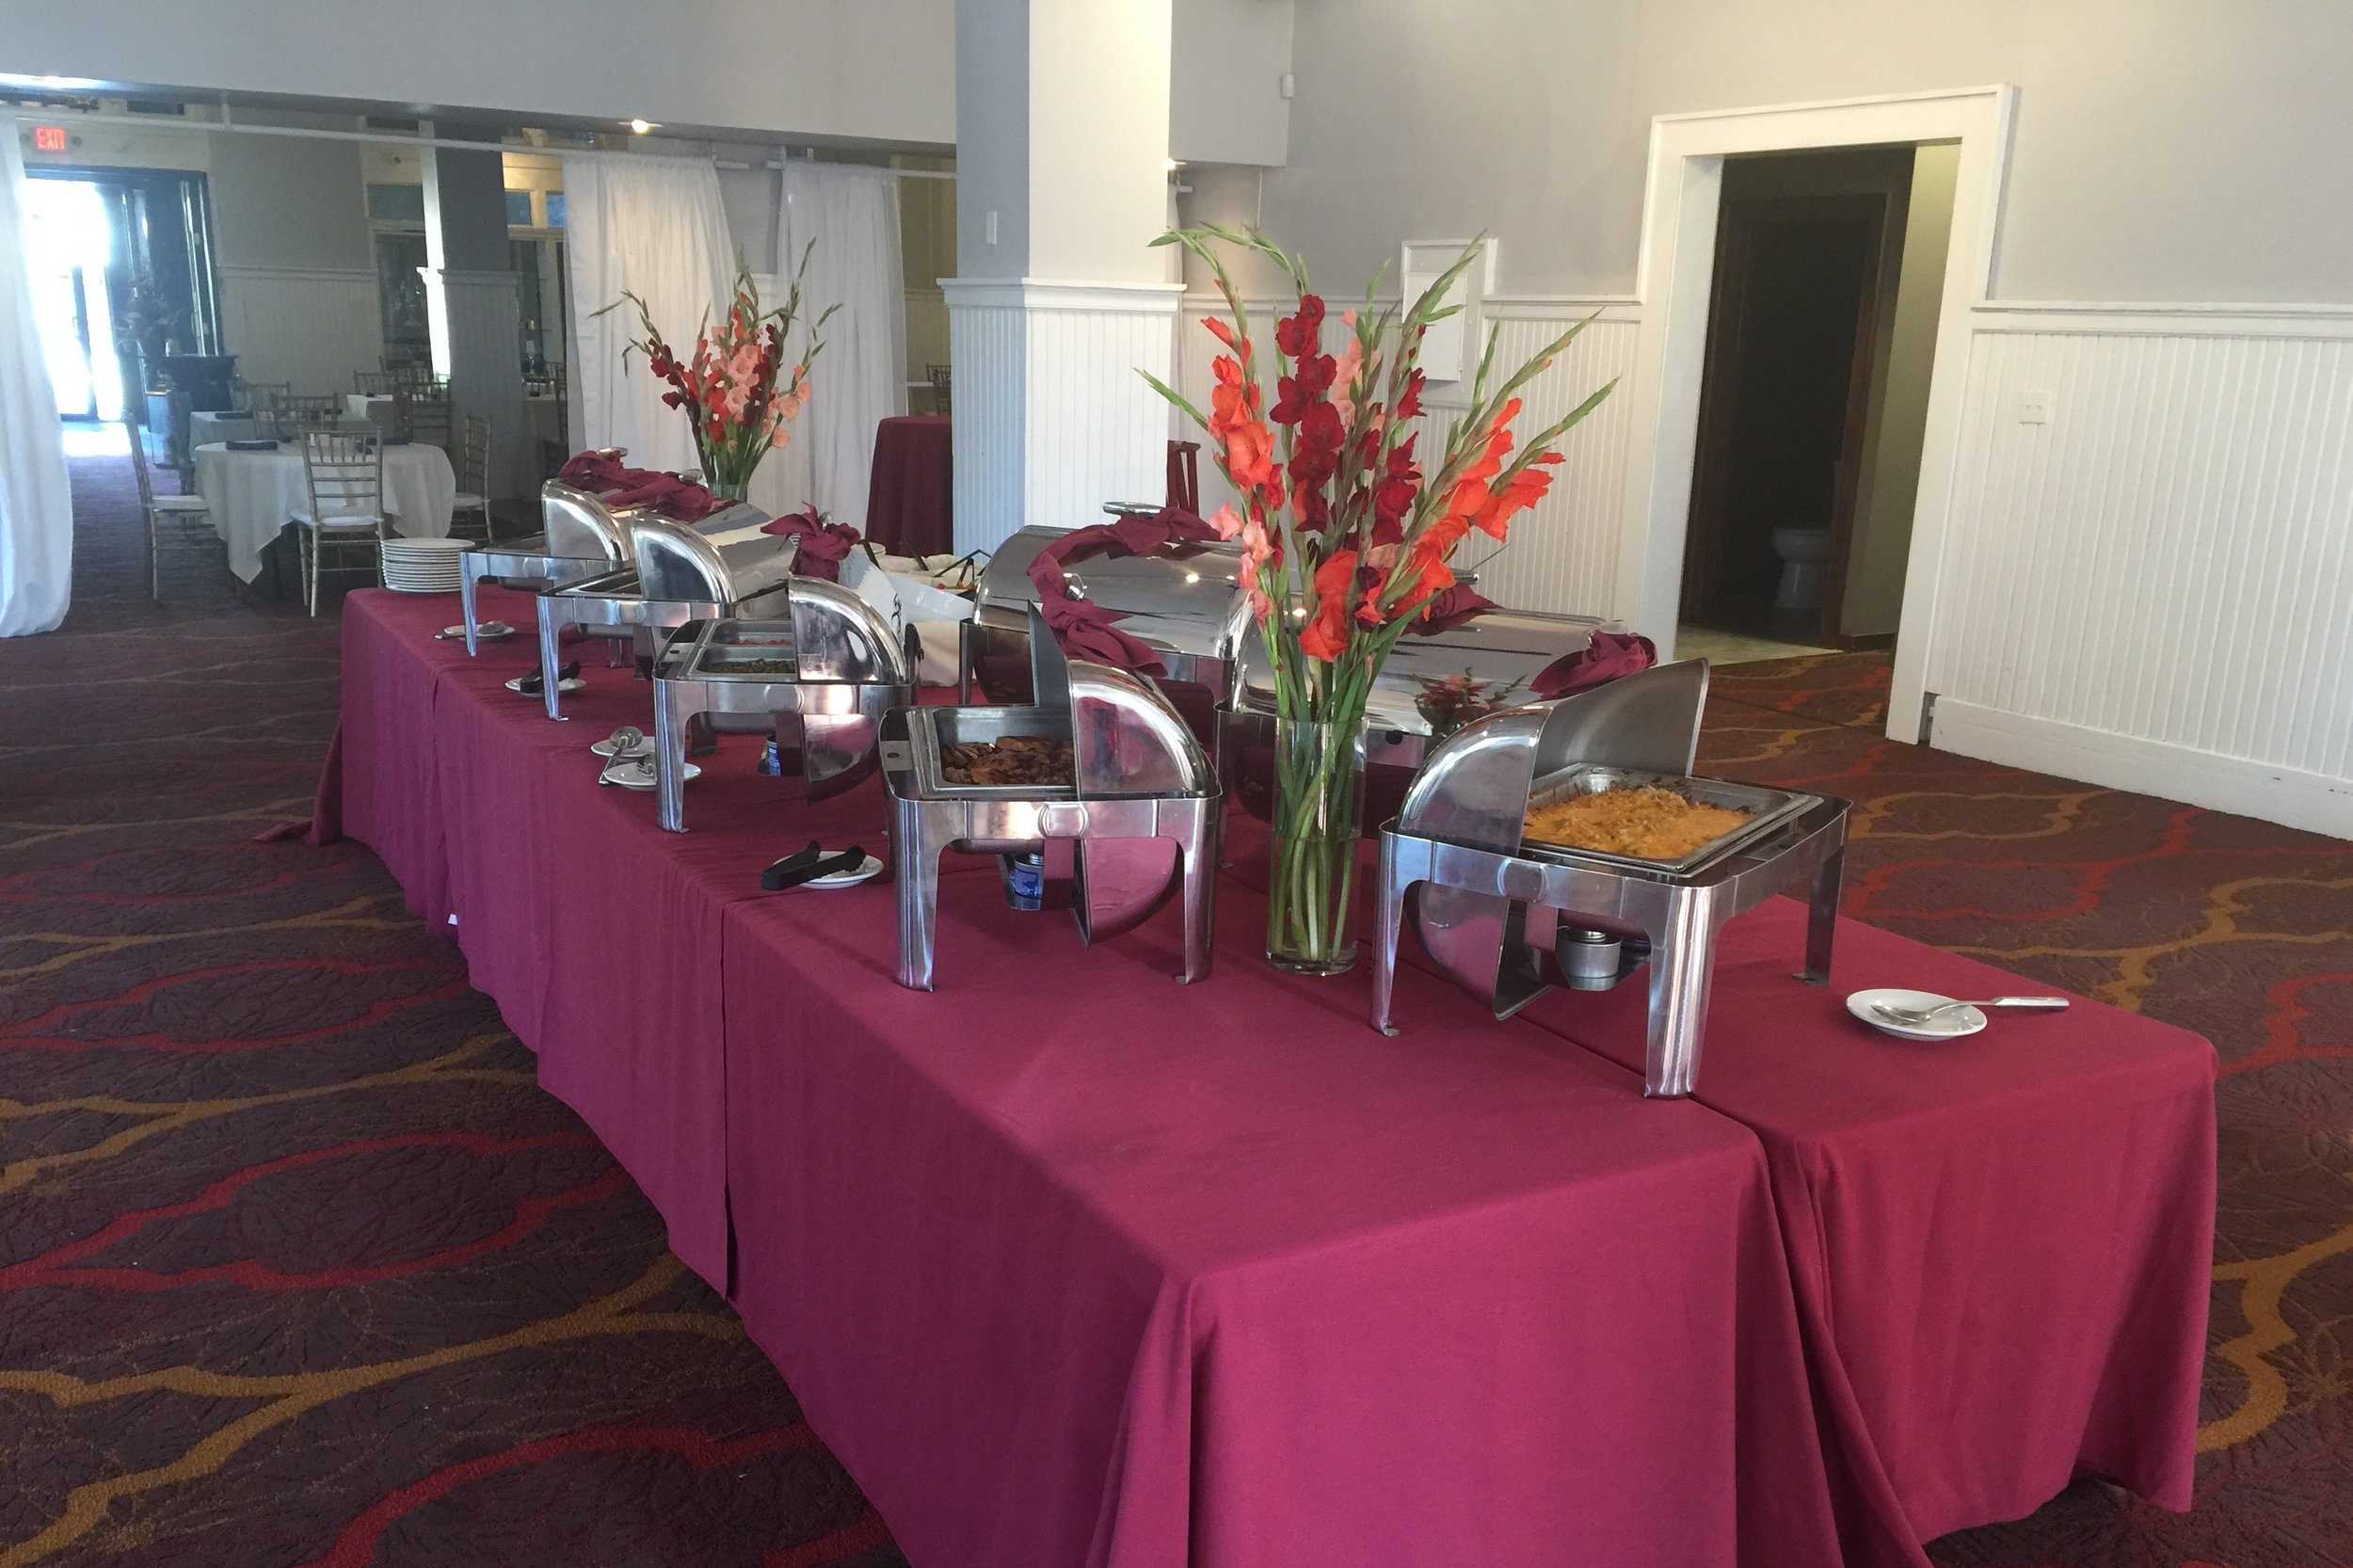 Full-Service - This all-you-can-eat, expanded menu is priced per person. This is ideal for weddings and corporate functions that require a higher-end service.Minimum headcount of 50.